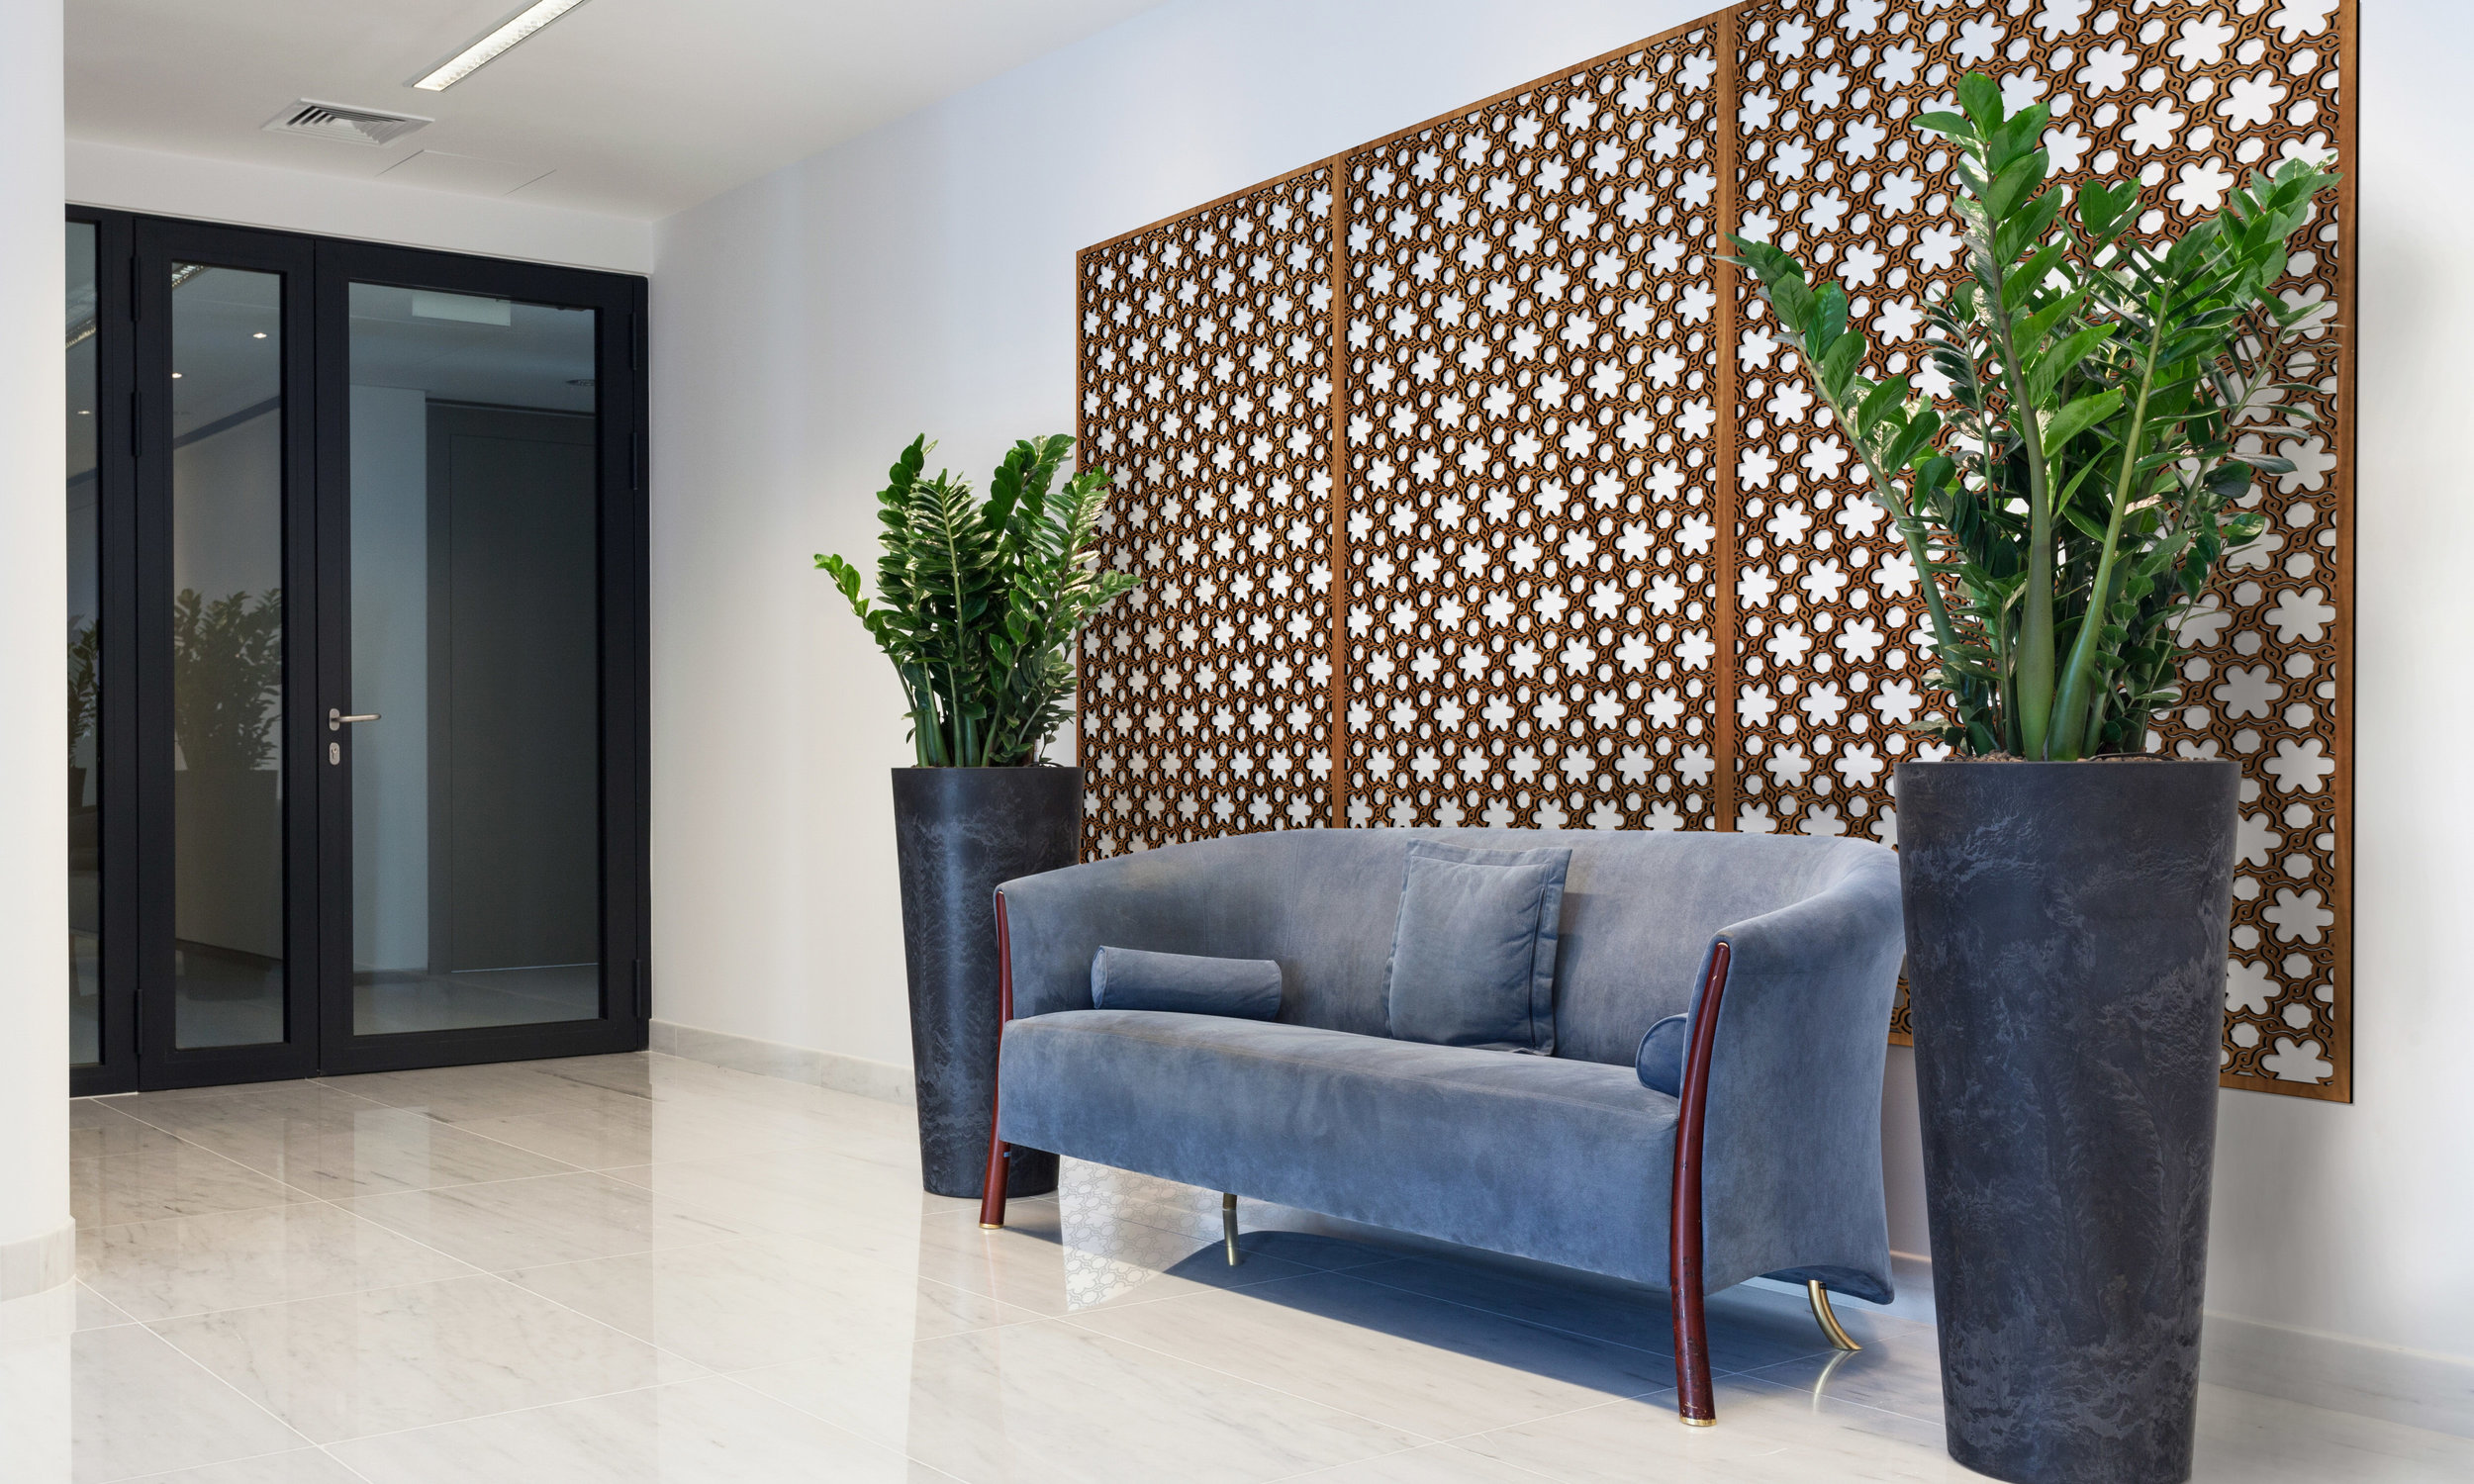 Installation Rendering A   Woven Flowers decorative office wall panel - shown in cherry